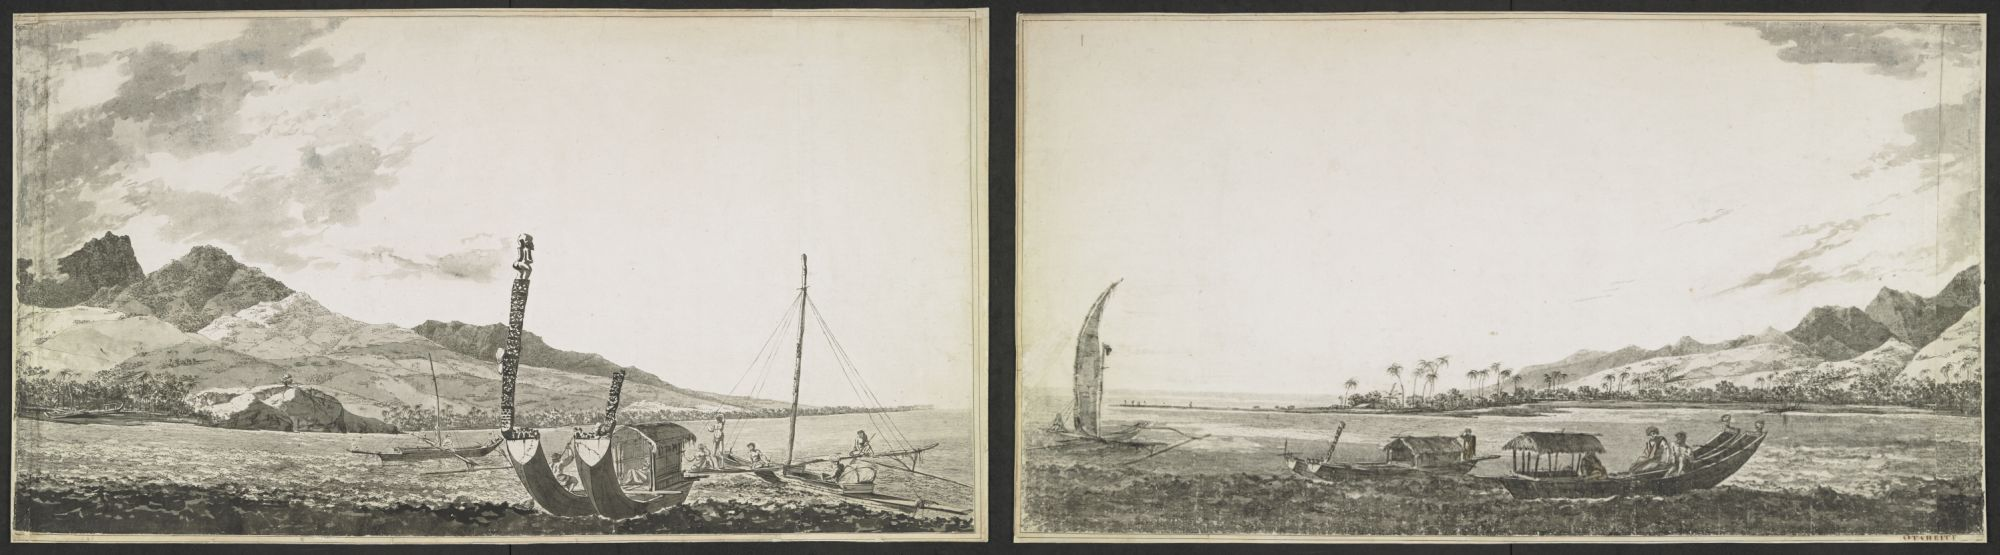 William Hodges' panoramic view of Matavai Bay, Tahiti, with Point Venus and Mount Orofena